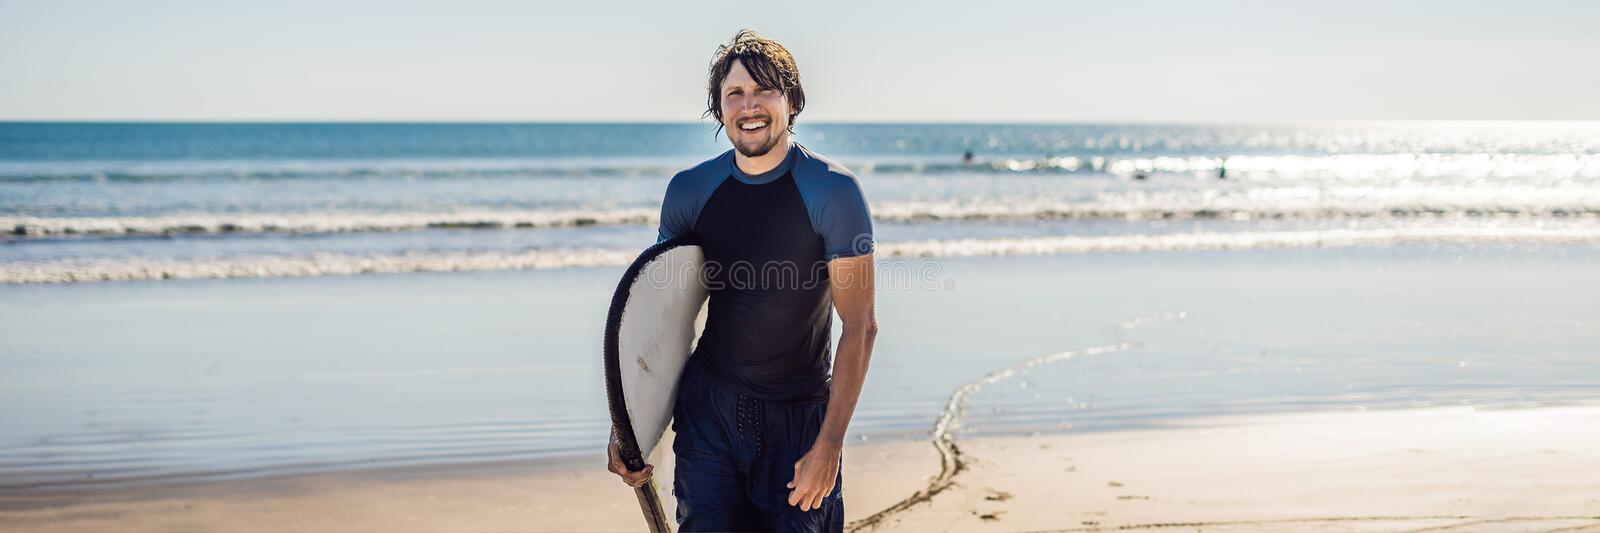 Handsome sporty young surfer posing with his surfboard under his arm in his wetsuit on a sandy tropical beach BANNER long format royalty free stock photography